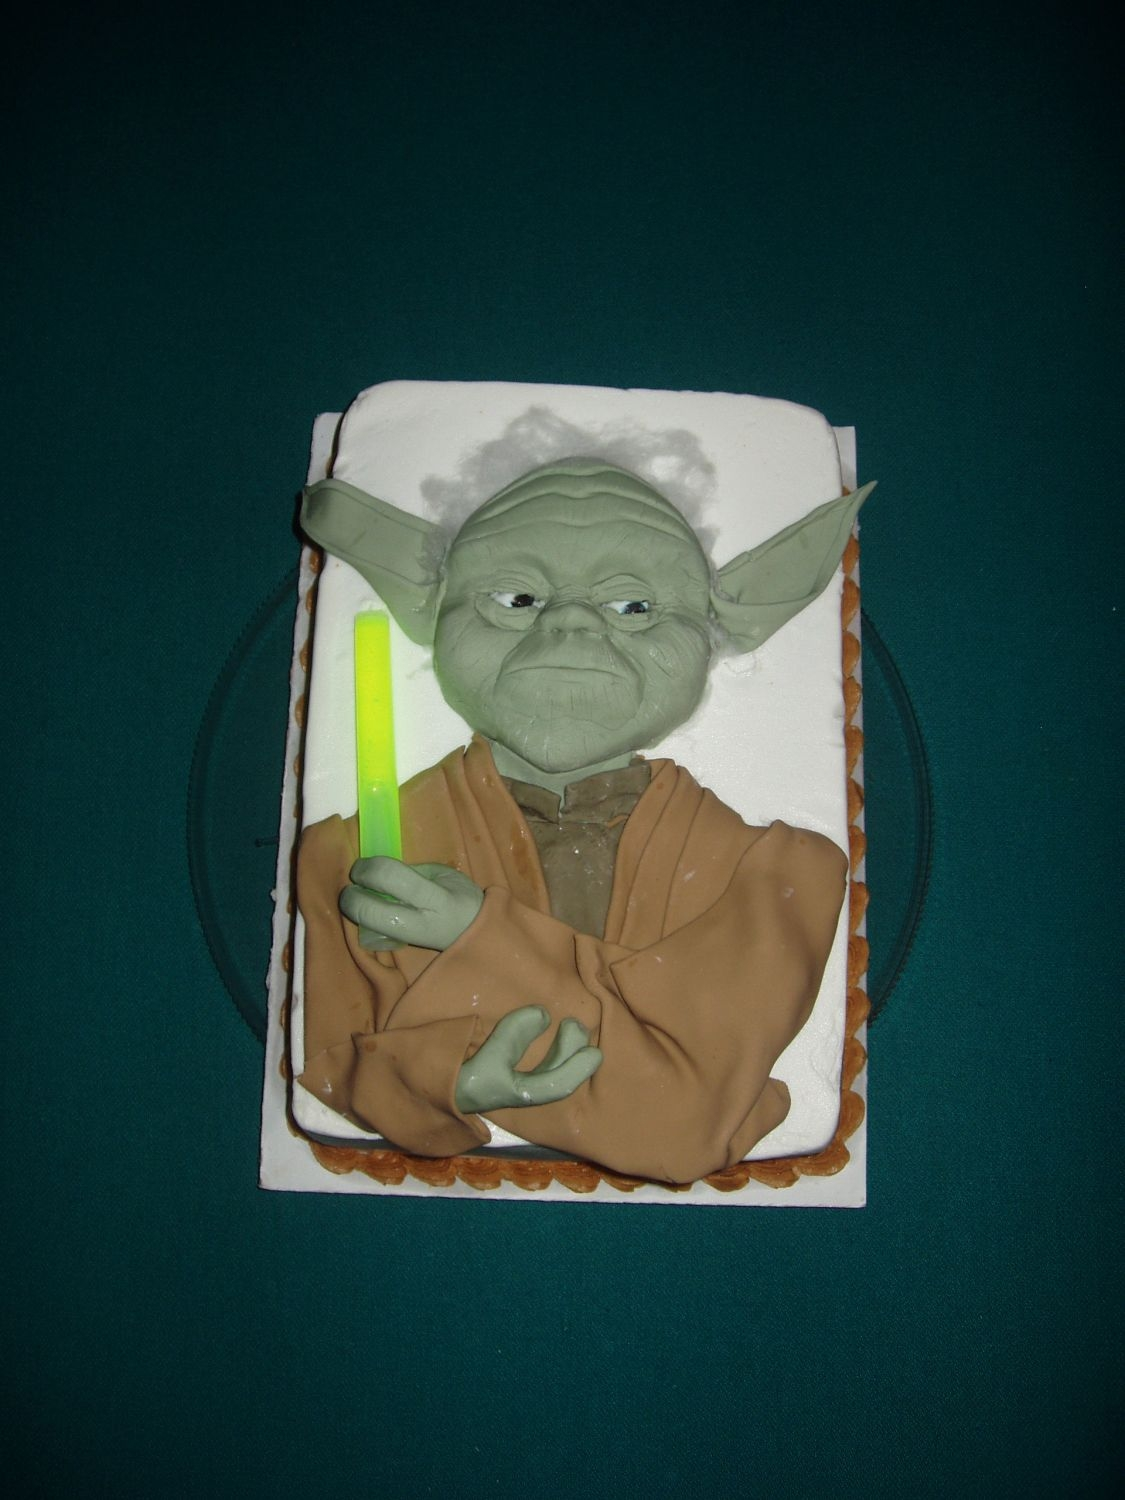 Yoda Yoda was made with fondant. He was placed on a lemon cake with buttercream icing and cream cheese filling!